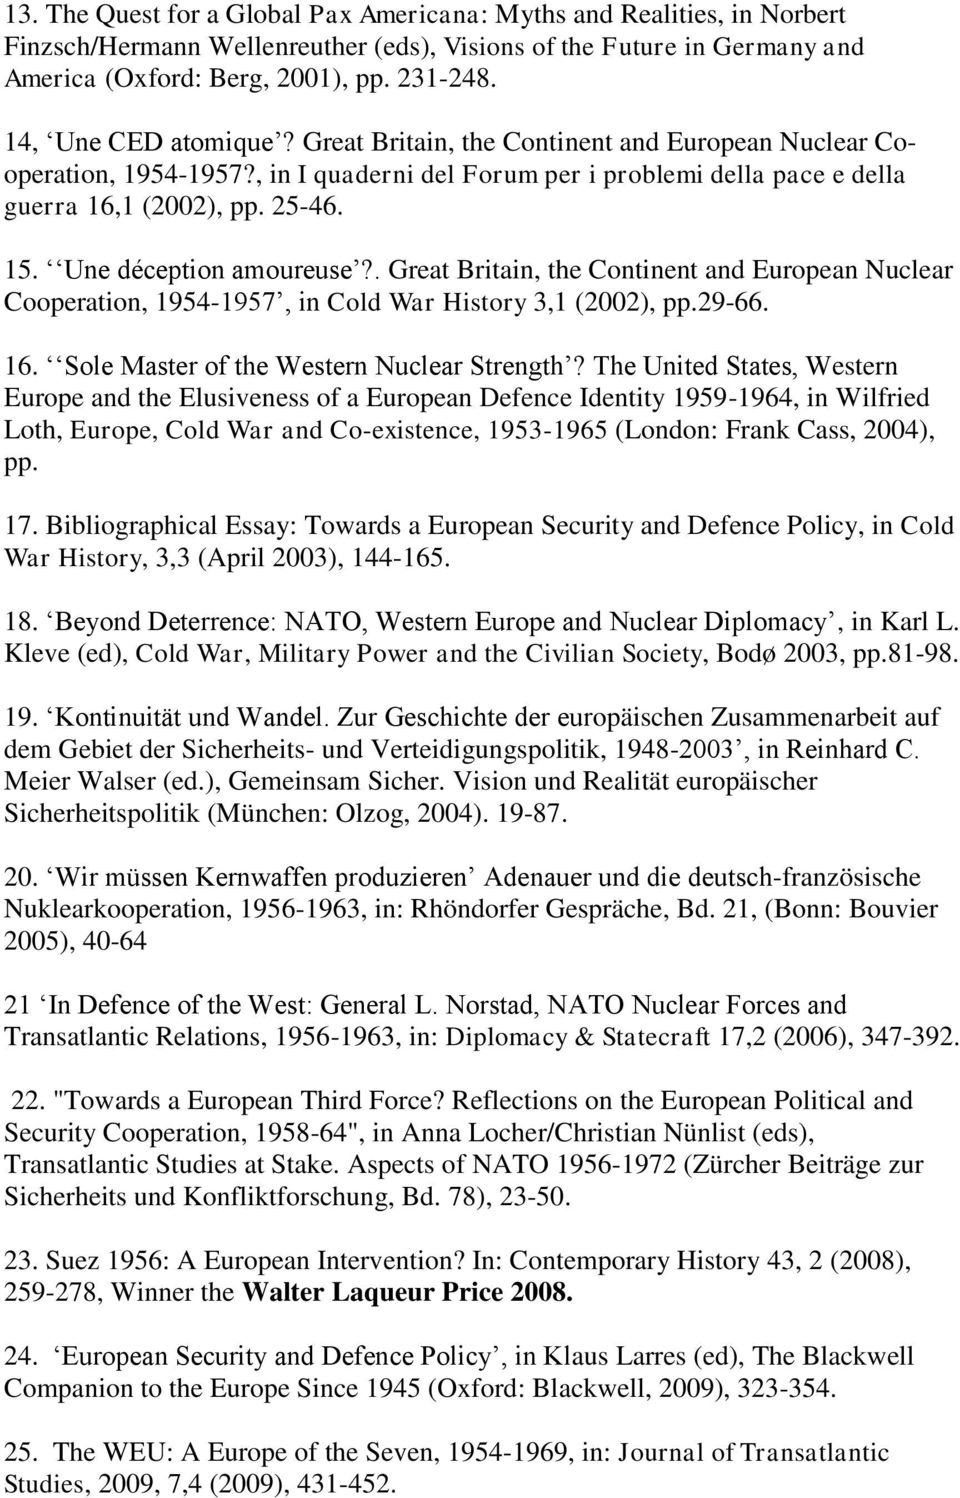 Une déception amoureuse?. Great Britain, the Continent and European Nuclear Cooperation, 1954-1957, in Cold War History 3,1 (2002), pp.29-66. 16. Sole Master of the Western Nuclear Strength?